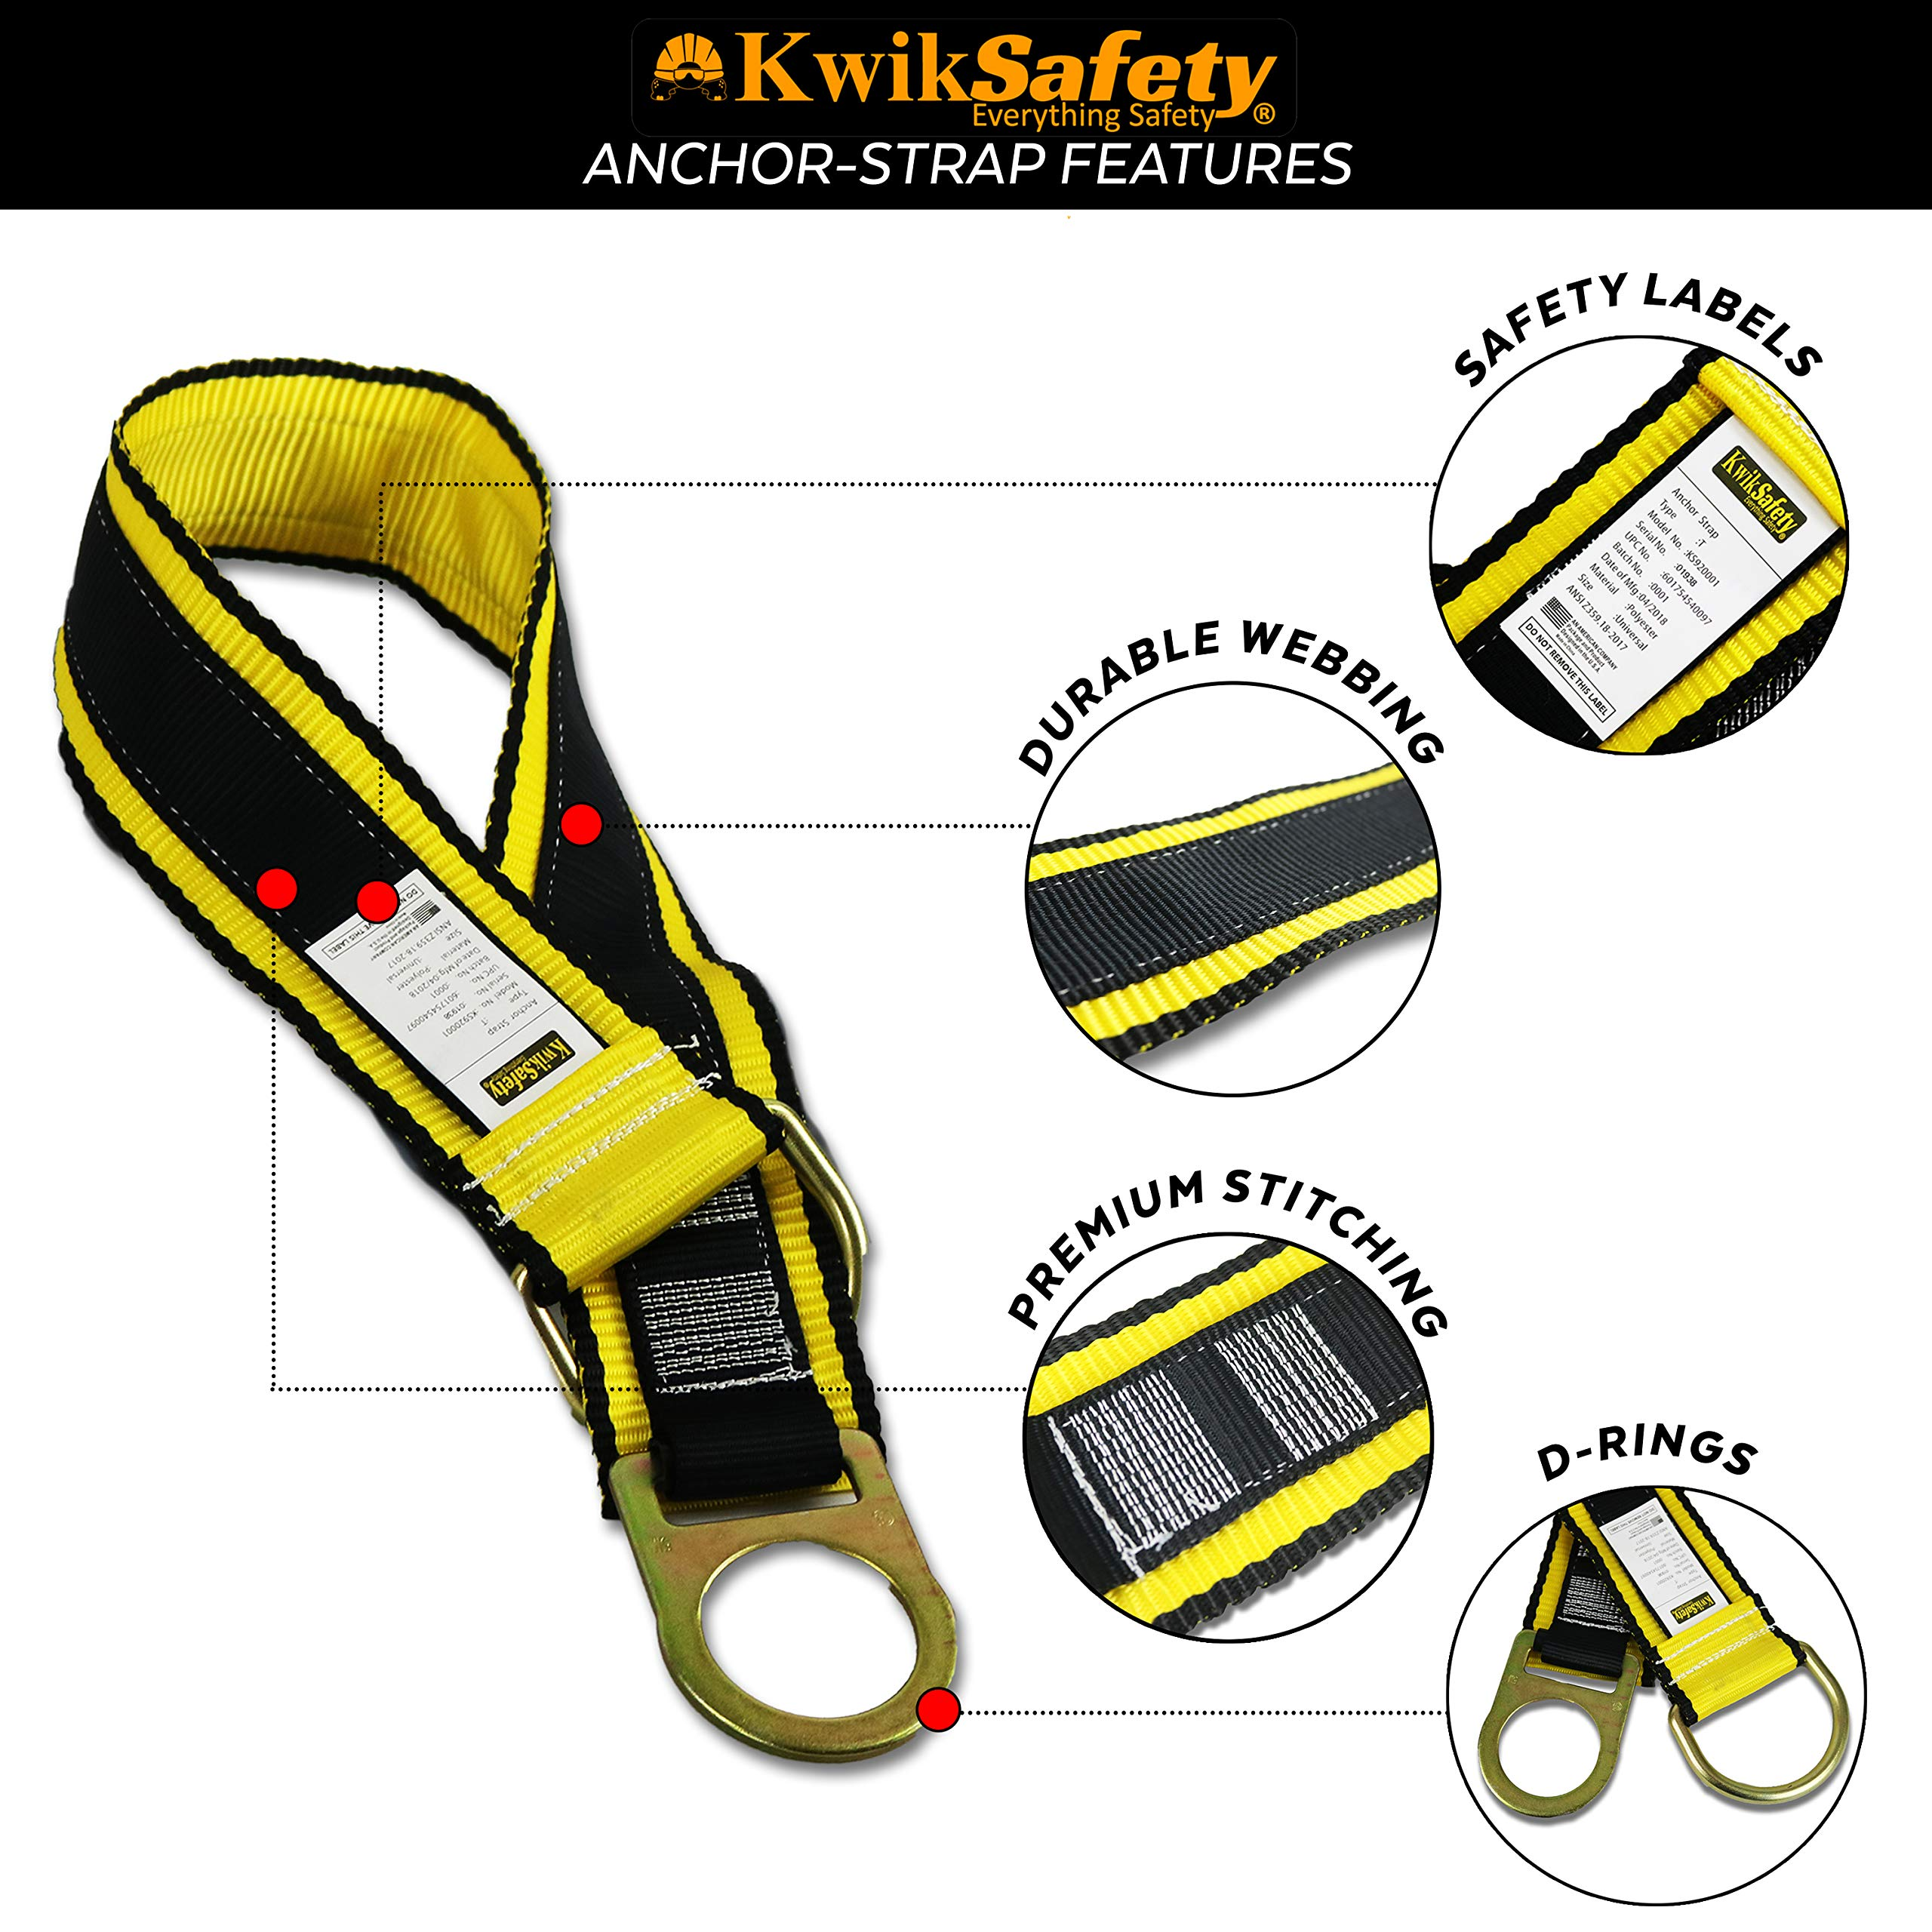 KwikSafety (Charlotte, NC) THUNDER KIT | 3D Full Body Safety Harness, 6' Lanyard, Tool Lanyard, 3' Cross Arm Strap Anchor ANSI OSHA PPE Fall Protection Arrest Restraint Construction Roofing Bucket by KwikSafety (Image #7)